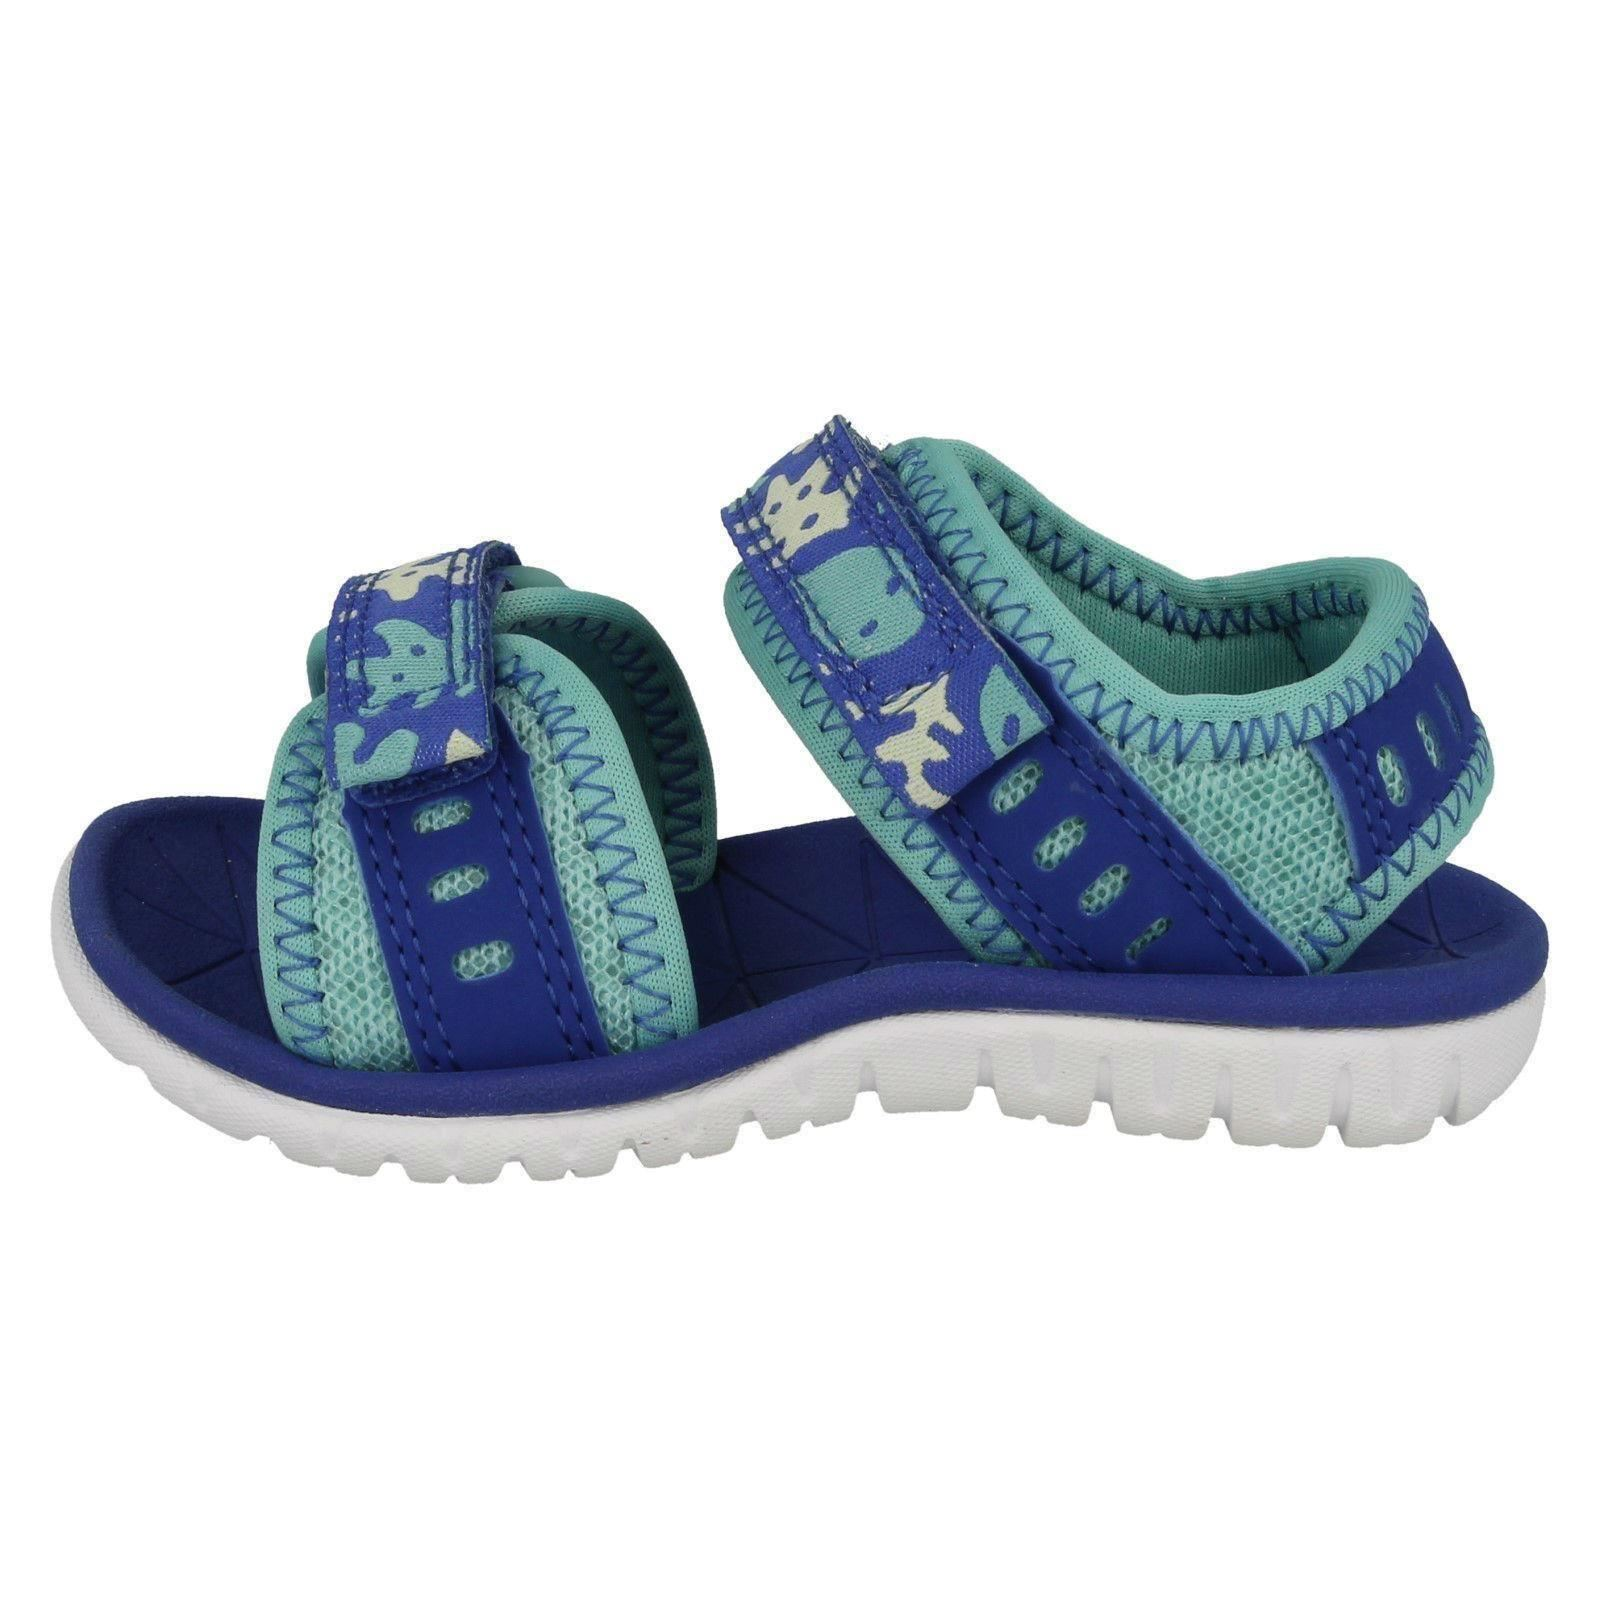 Girls Clarks Casual Strapped Sandals Surfing Moon *